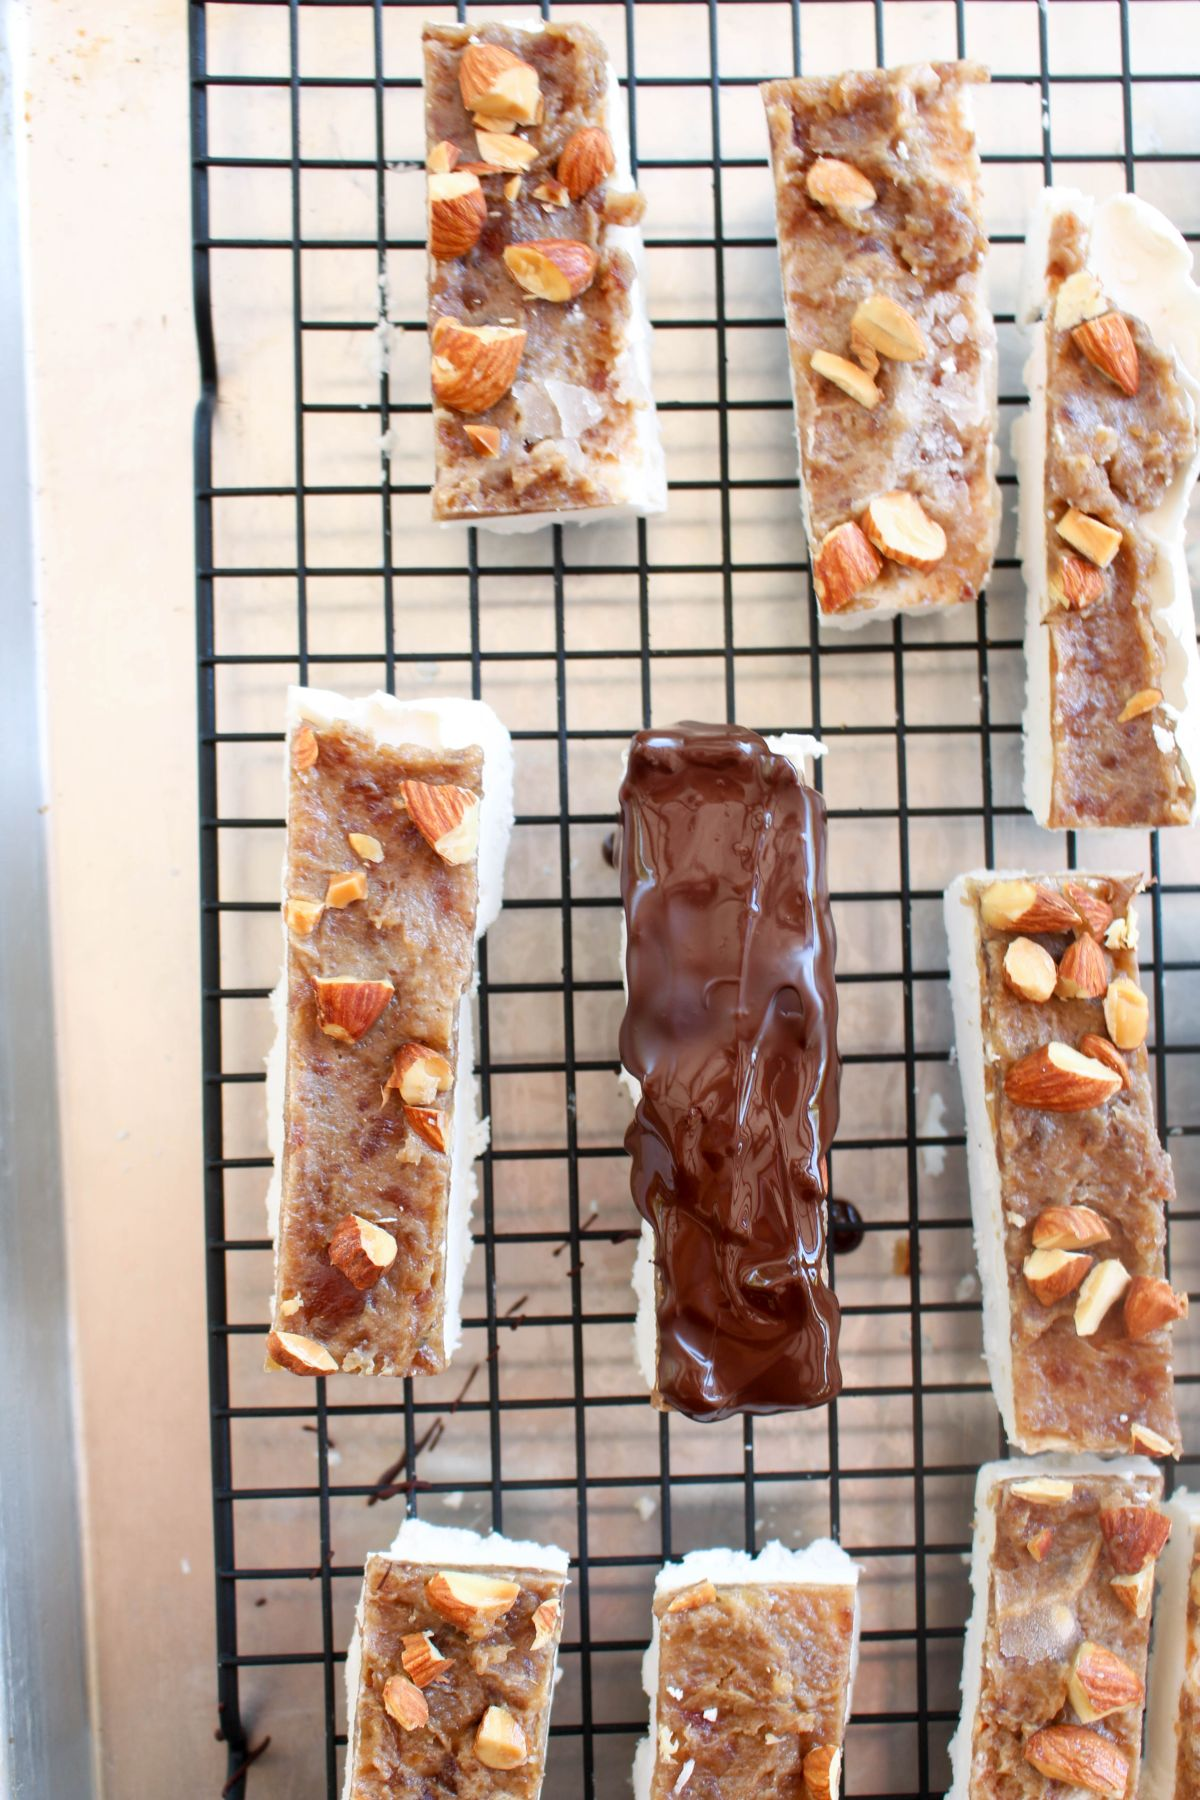 Almond snickers ice cream bars serve